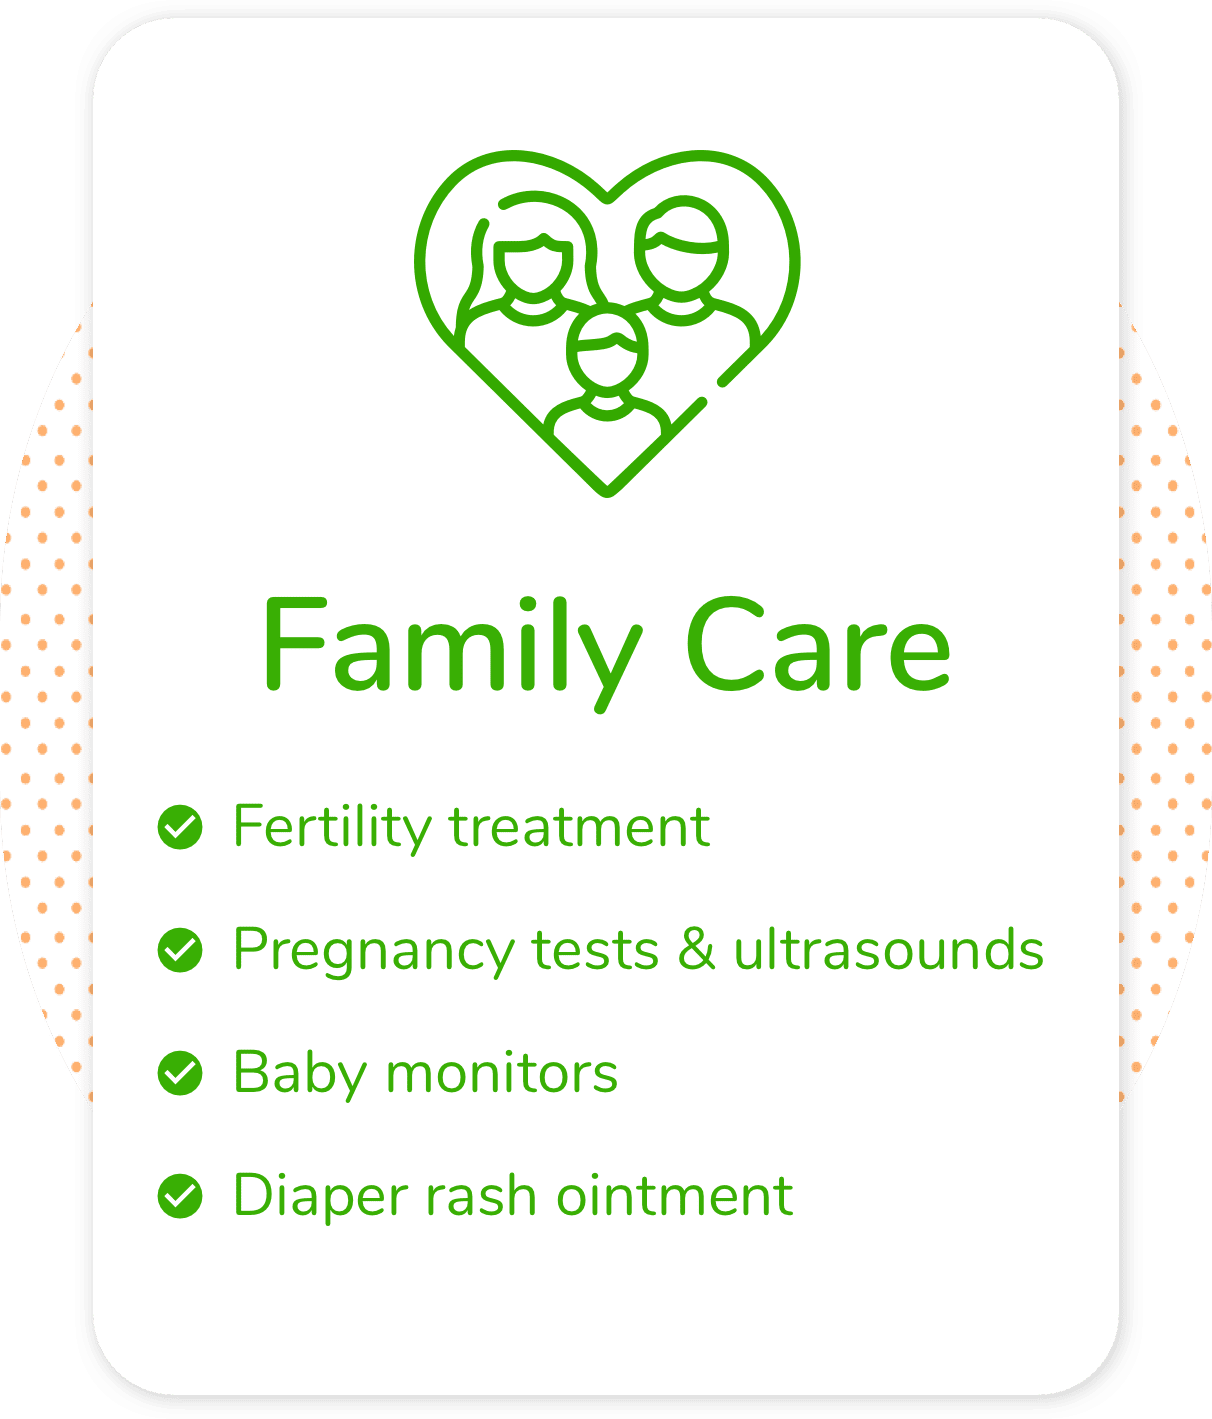 family care - Individual Health Savings Account